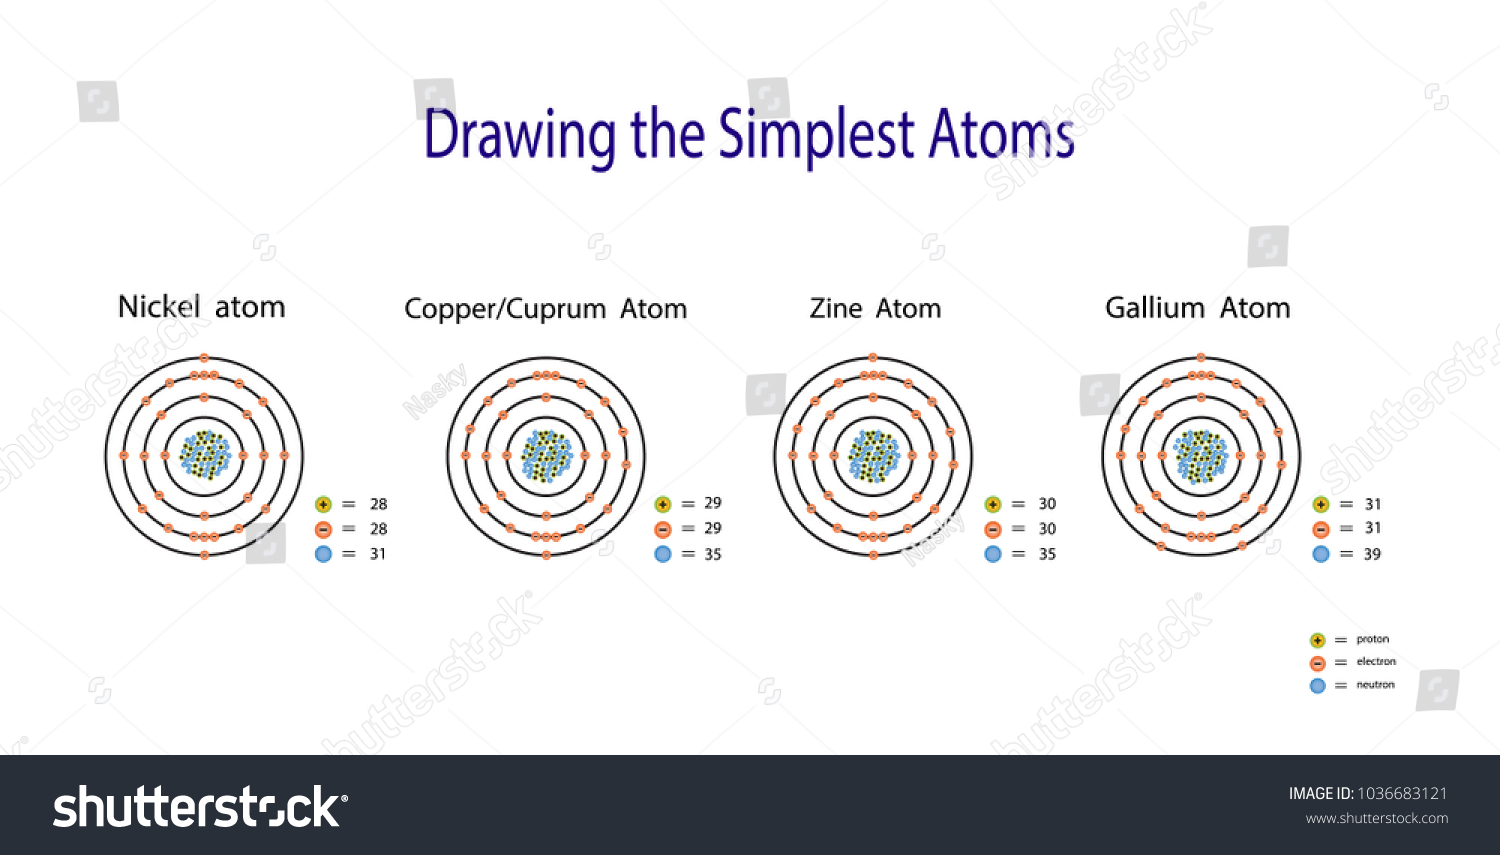 copper atom diagram oma parc de la villette simplest atomic model nickel zine stock vector royalty free the gallium chemistry